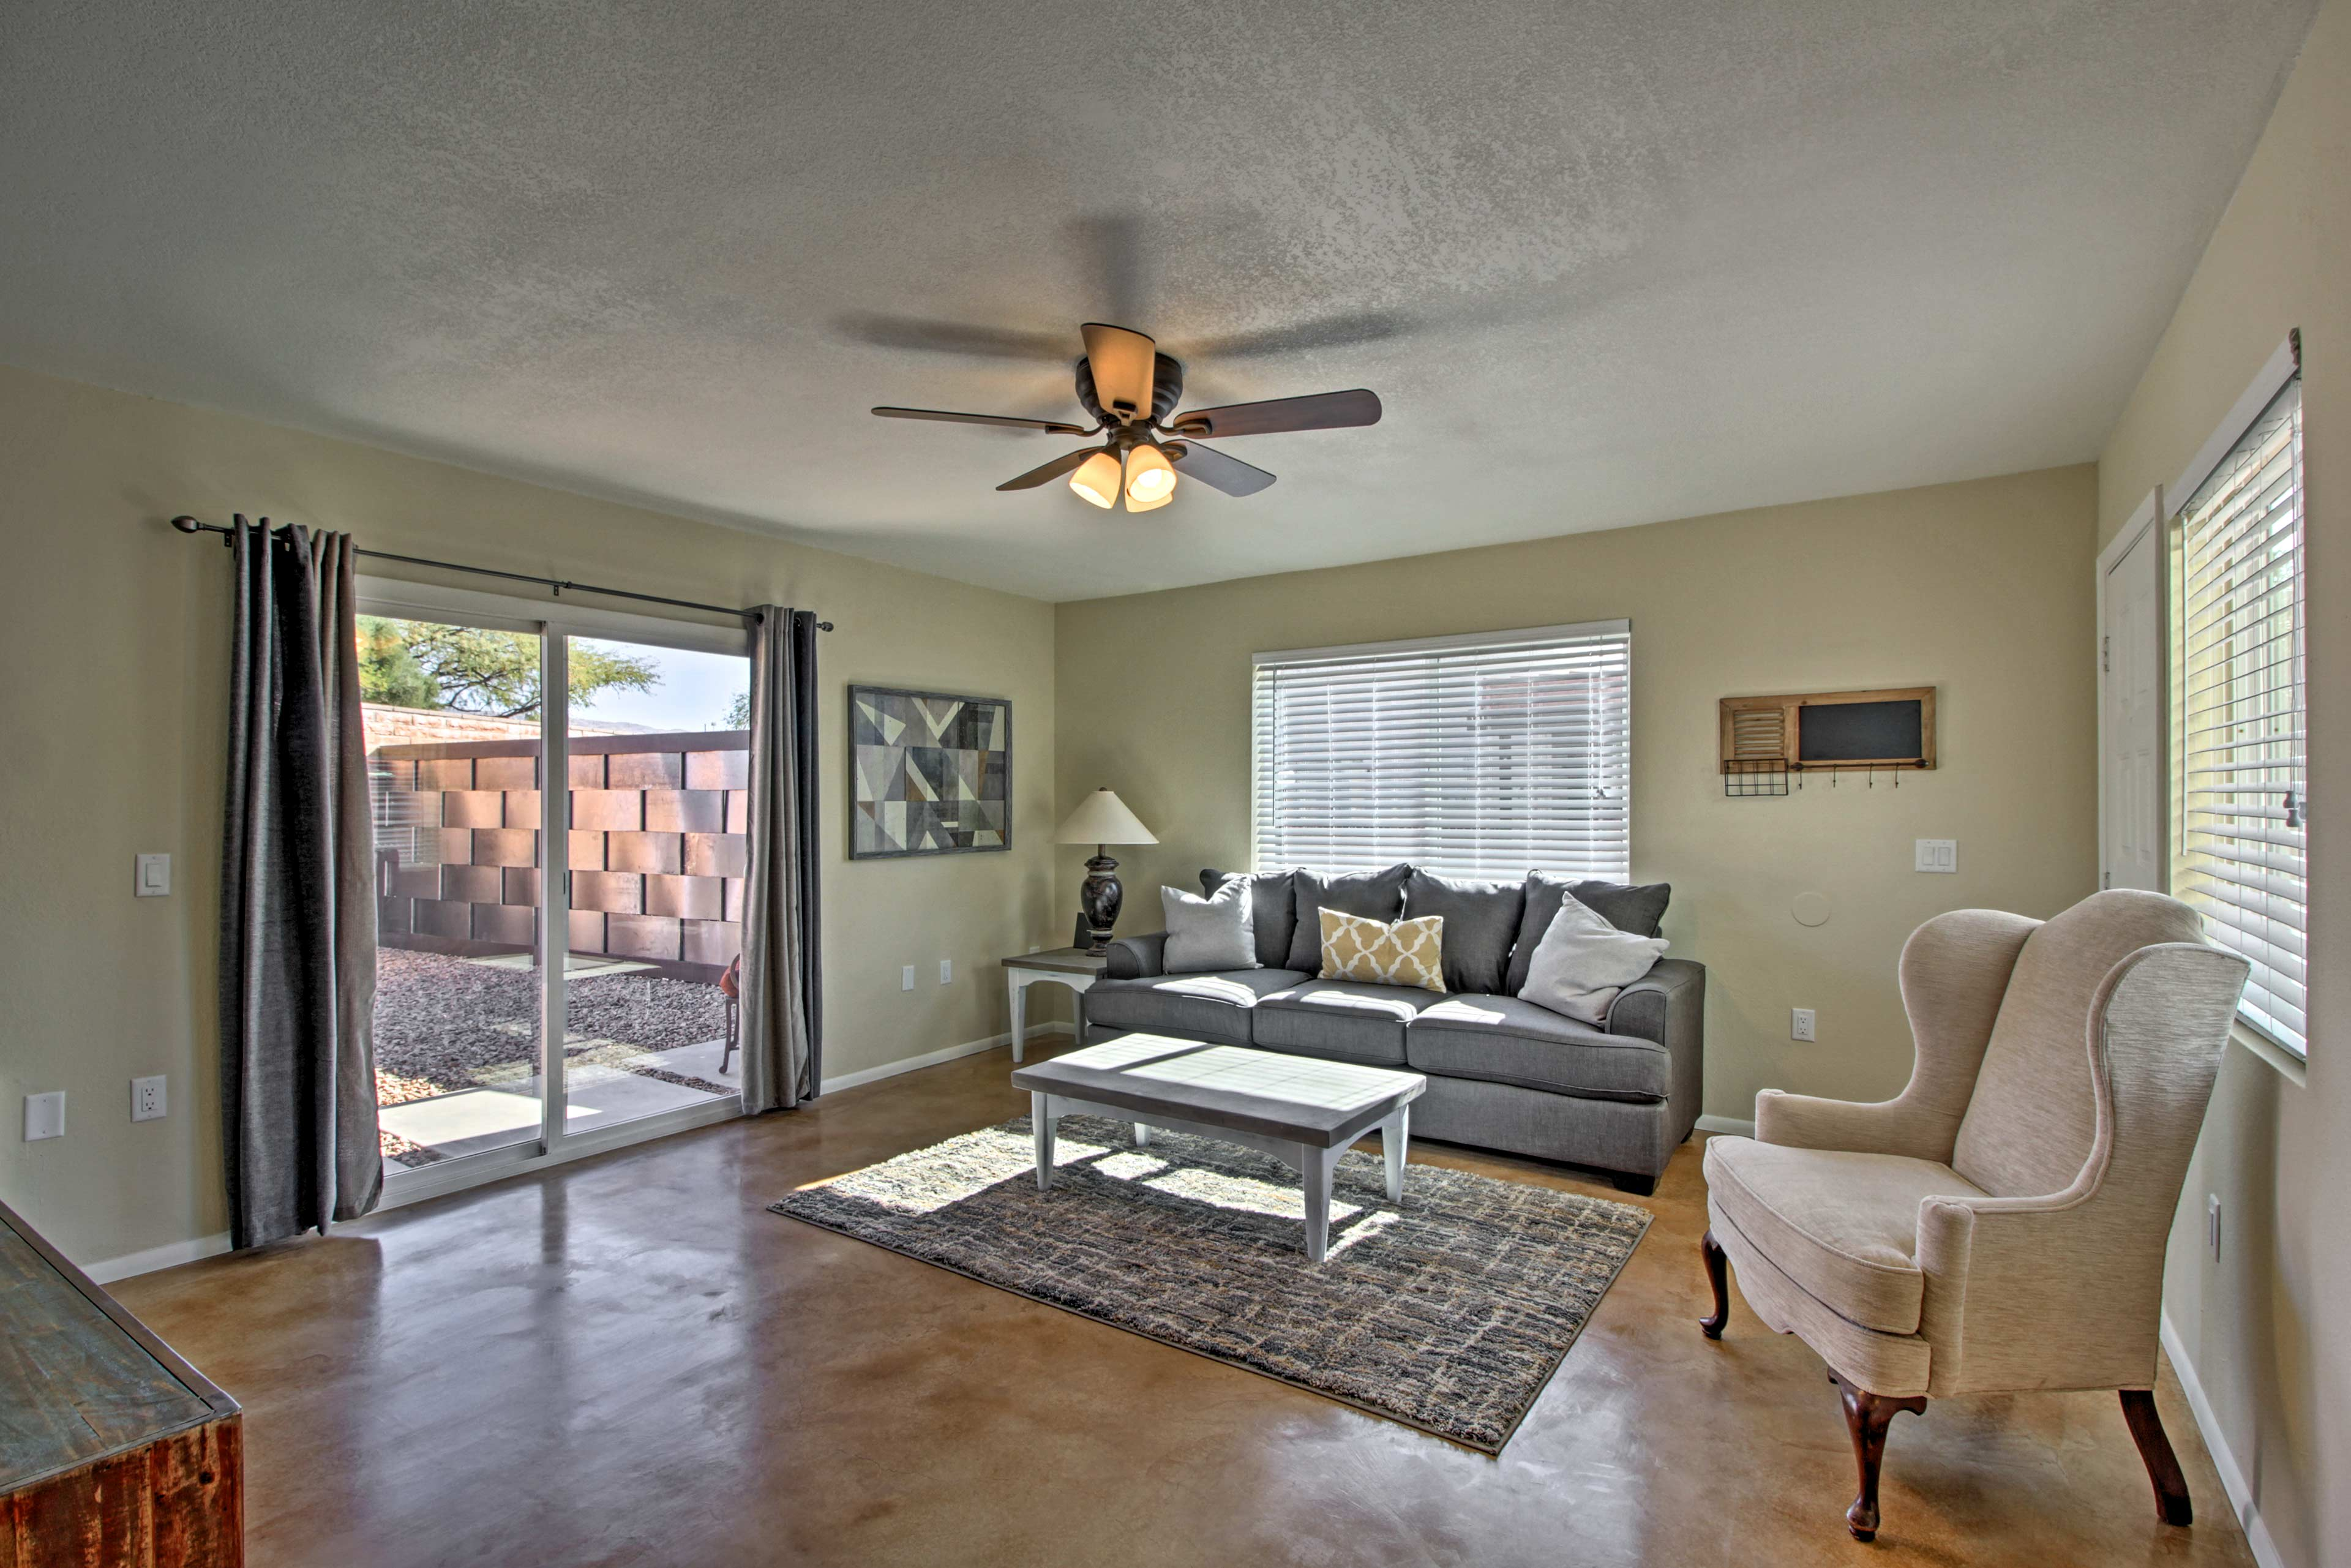 Rest easy inside nearly 1,000 square feet of newly renovated living space.